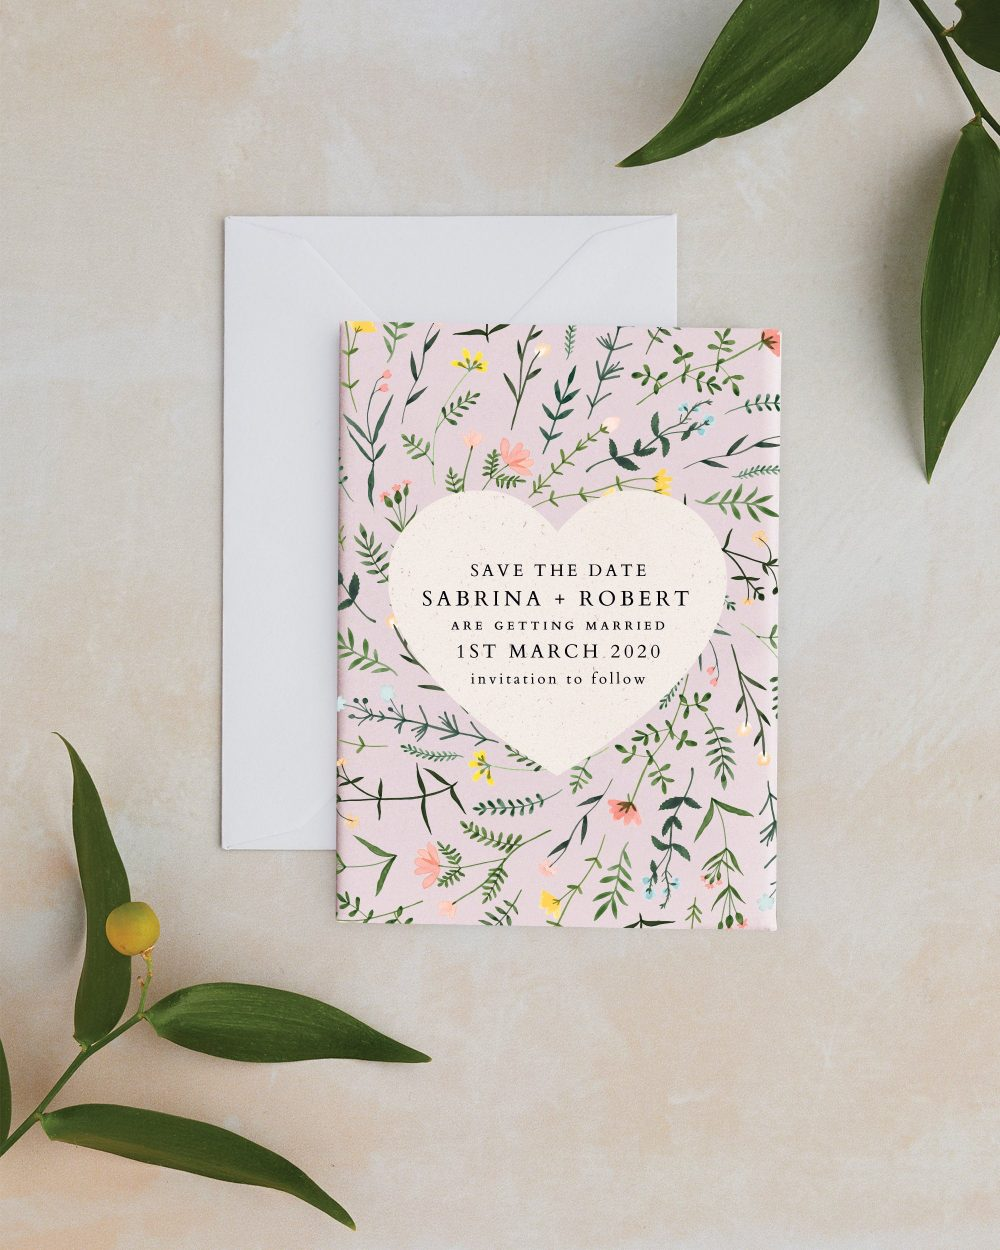 Save The Date - Wild Flower Blush Save Date, With Rustic Wild Flowers & Heart